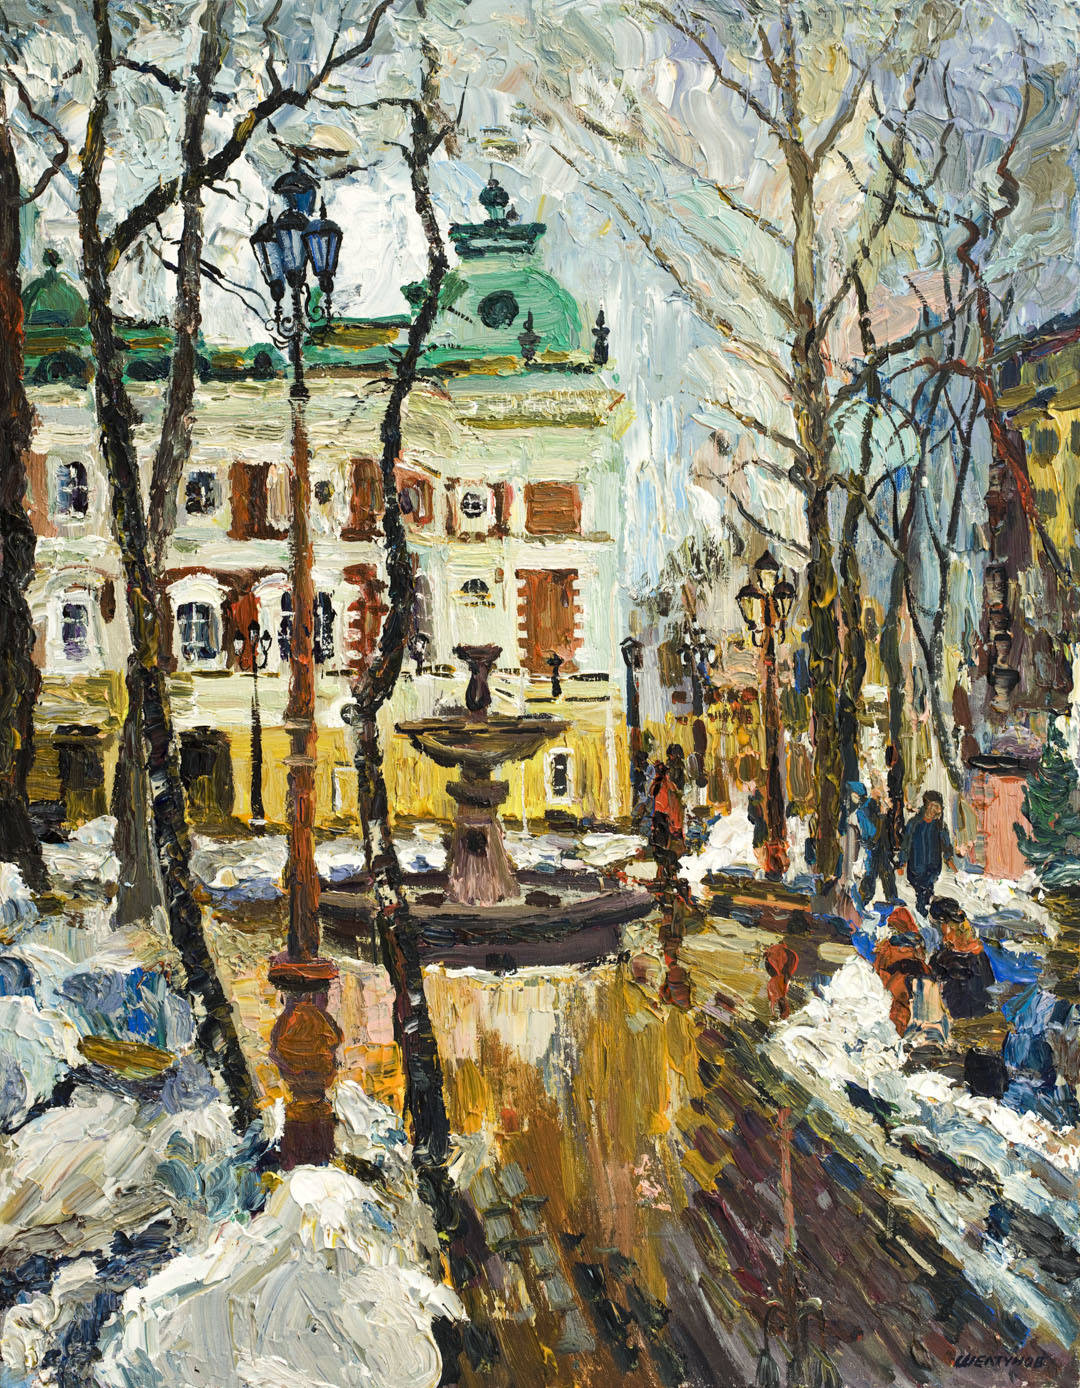 Alexander Sheltunov. Theatrical Small Yard 剧院小庭 2007 Oil on canvas 油画底布 90 × 70